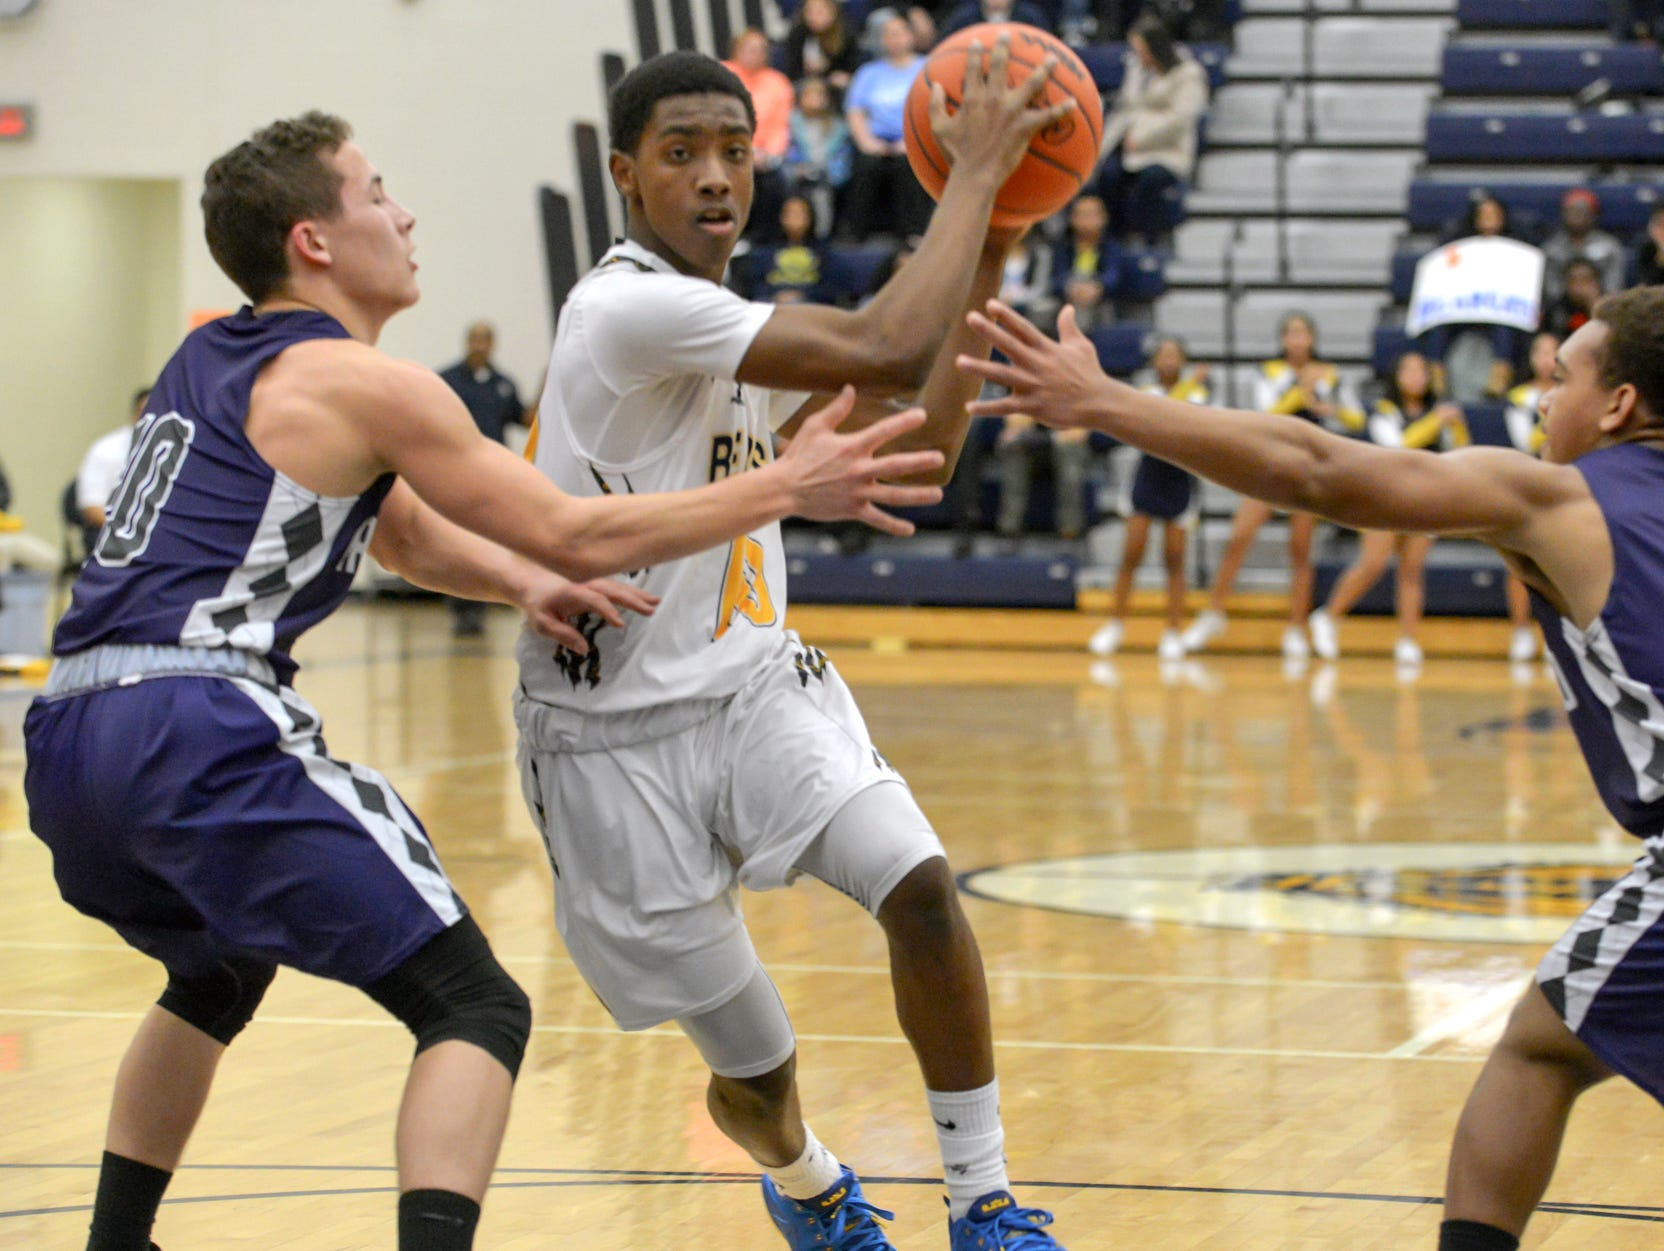 Central's Jahmiel Wade drives through two Lakeview defenders Thursday night.